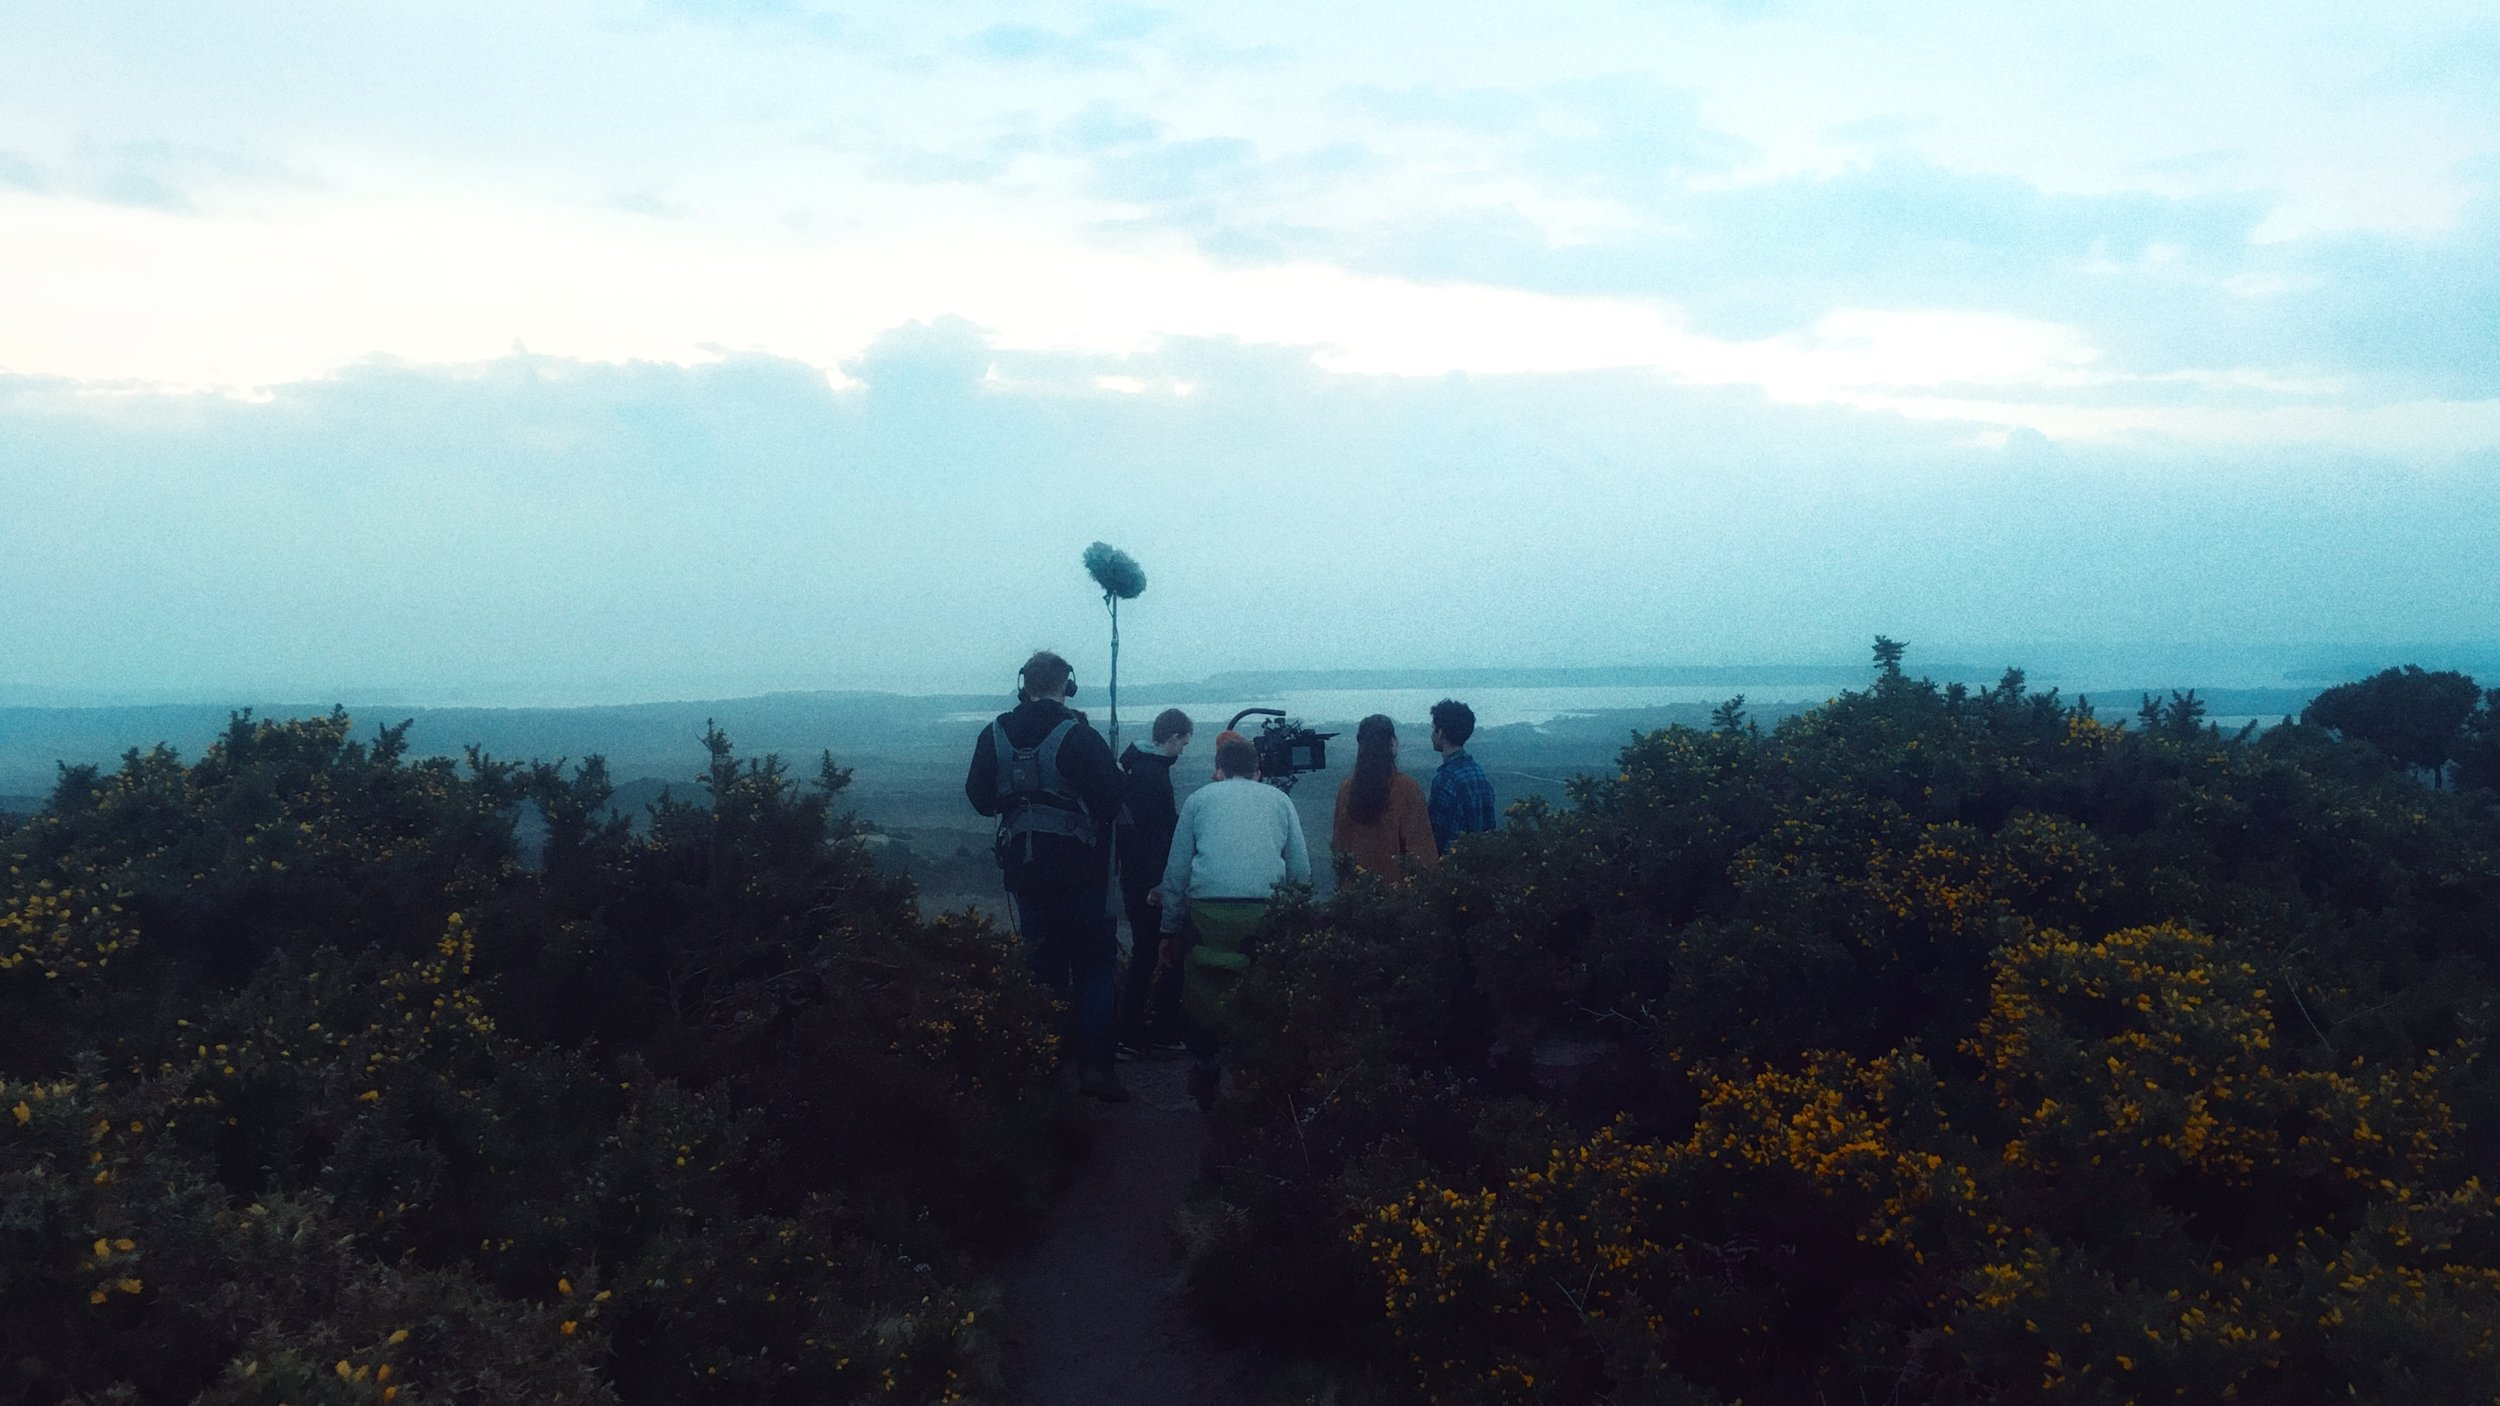 A touch of clifftop romance (with boom mic of course)